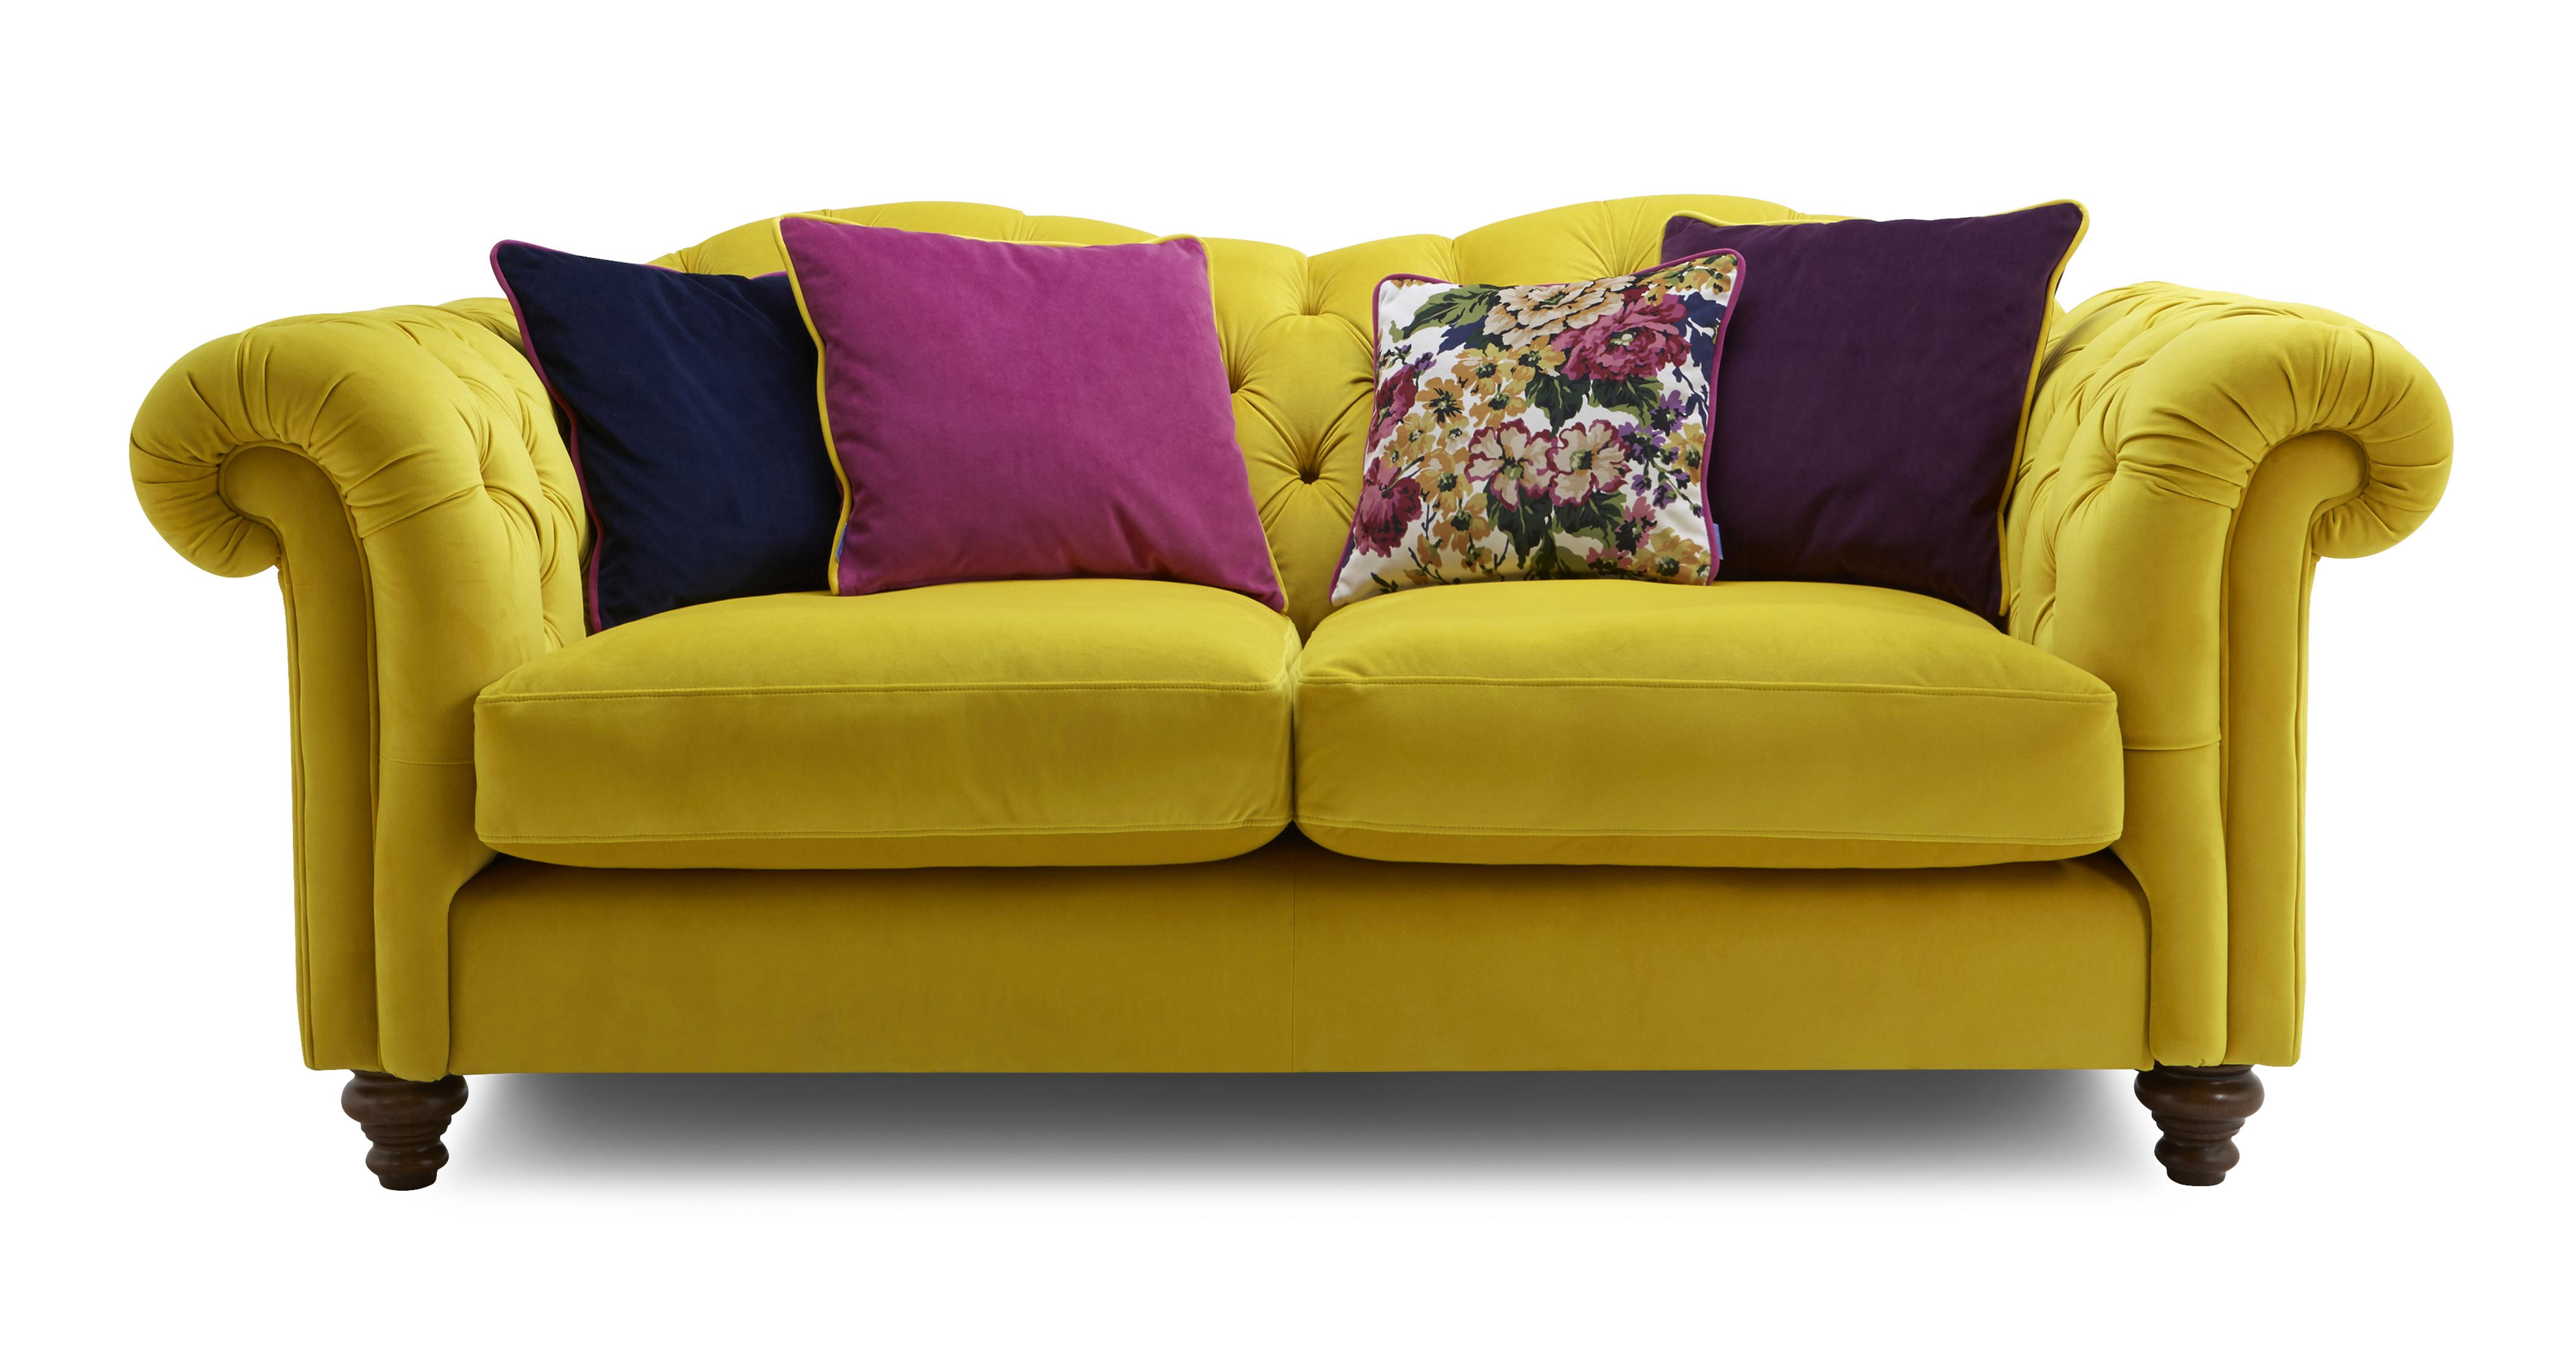 Hard Goods Sofa Buying Agency in Delhi